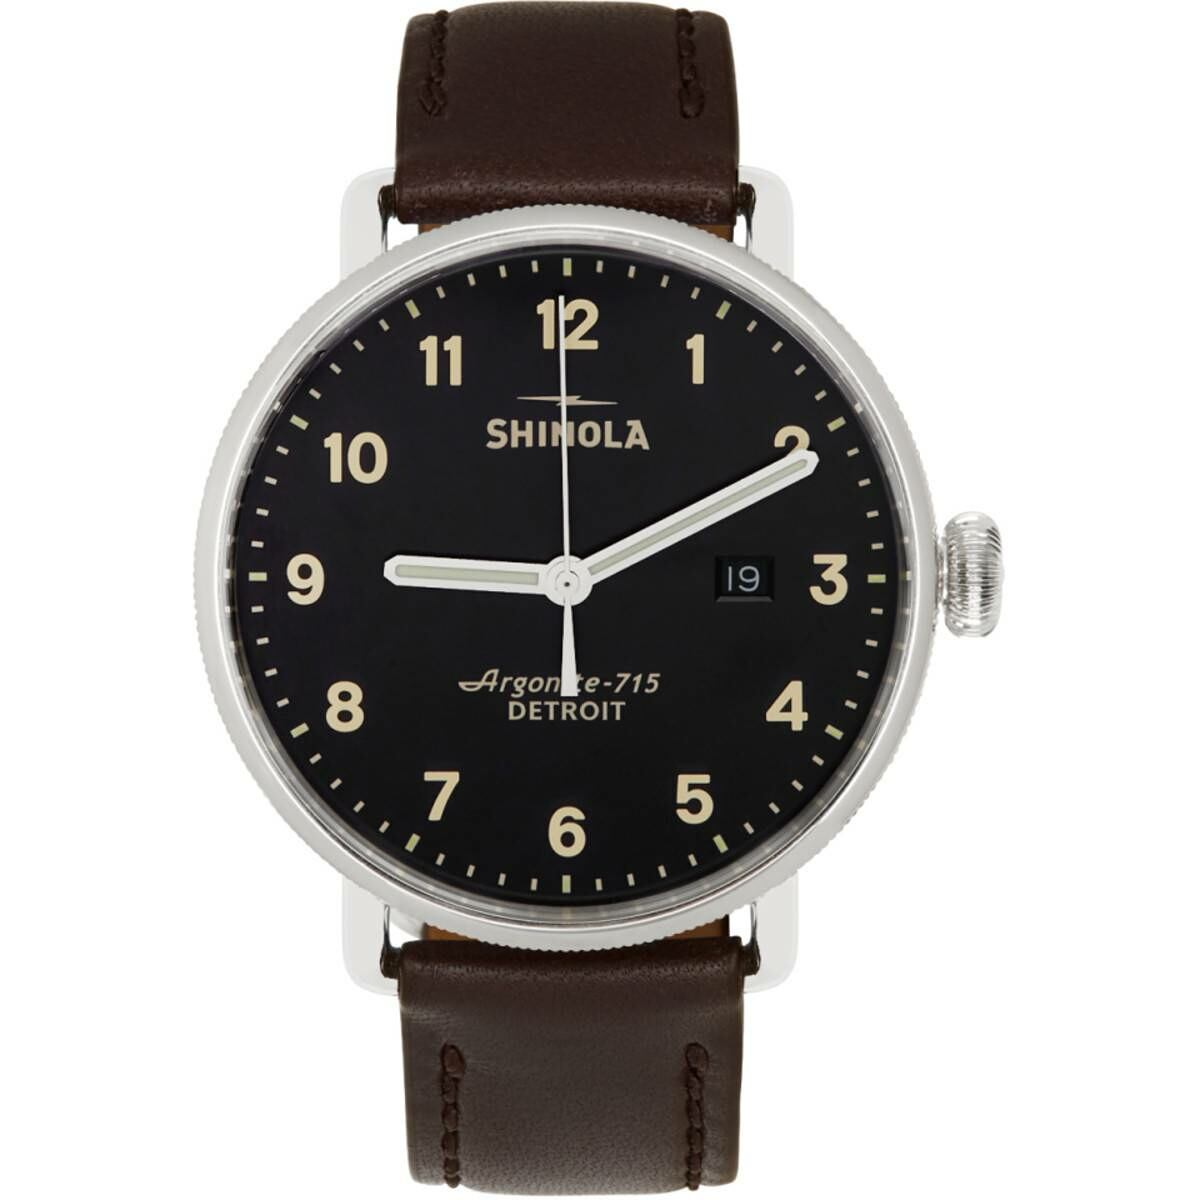 Shinola Silver and Black The Canfield 43mm Watch Ssense USA MEN Men ACCESSORIES Mens WATCHES